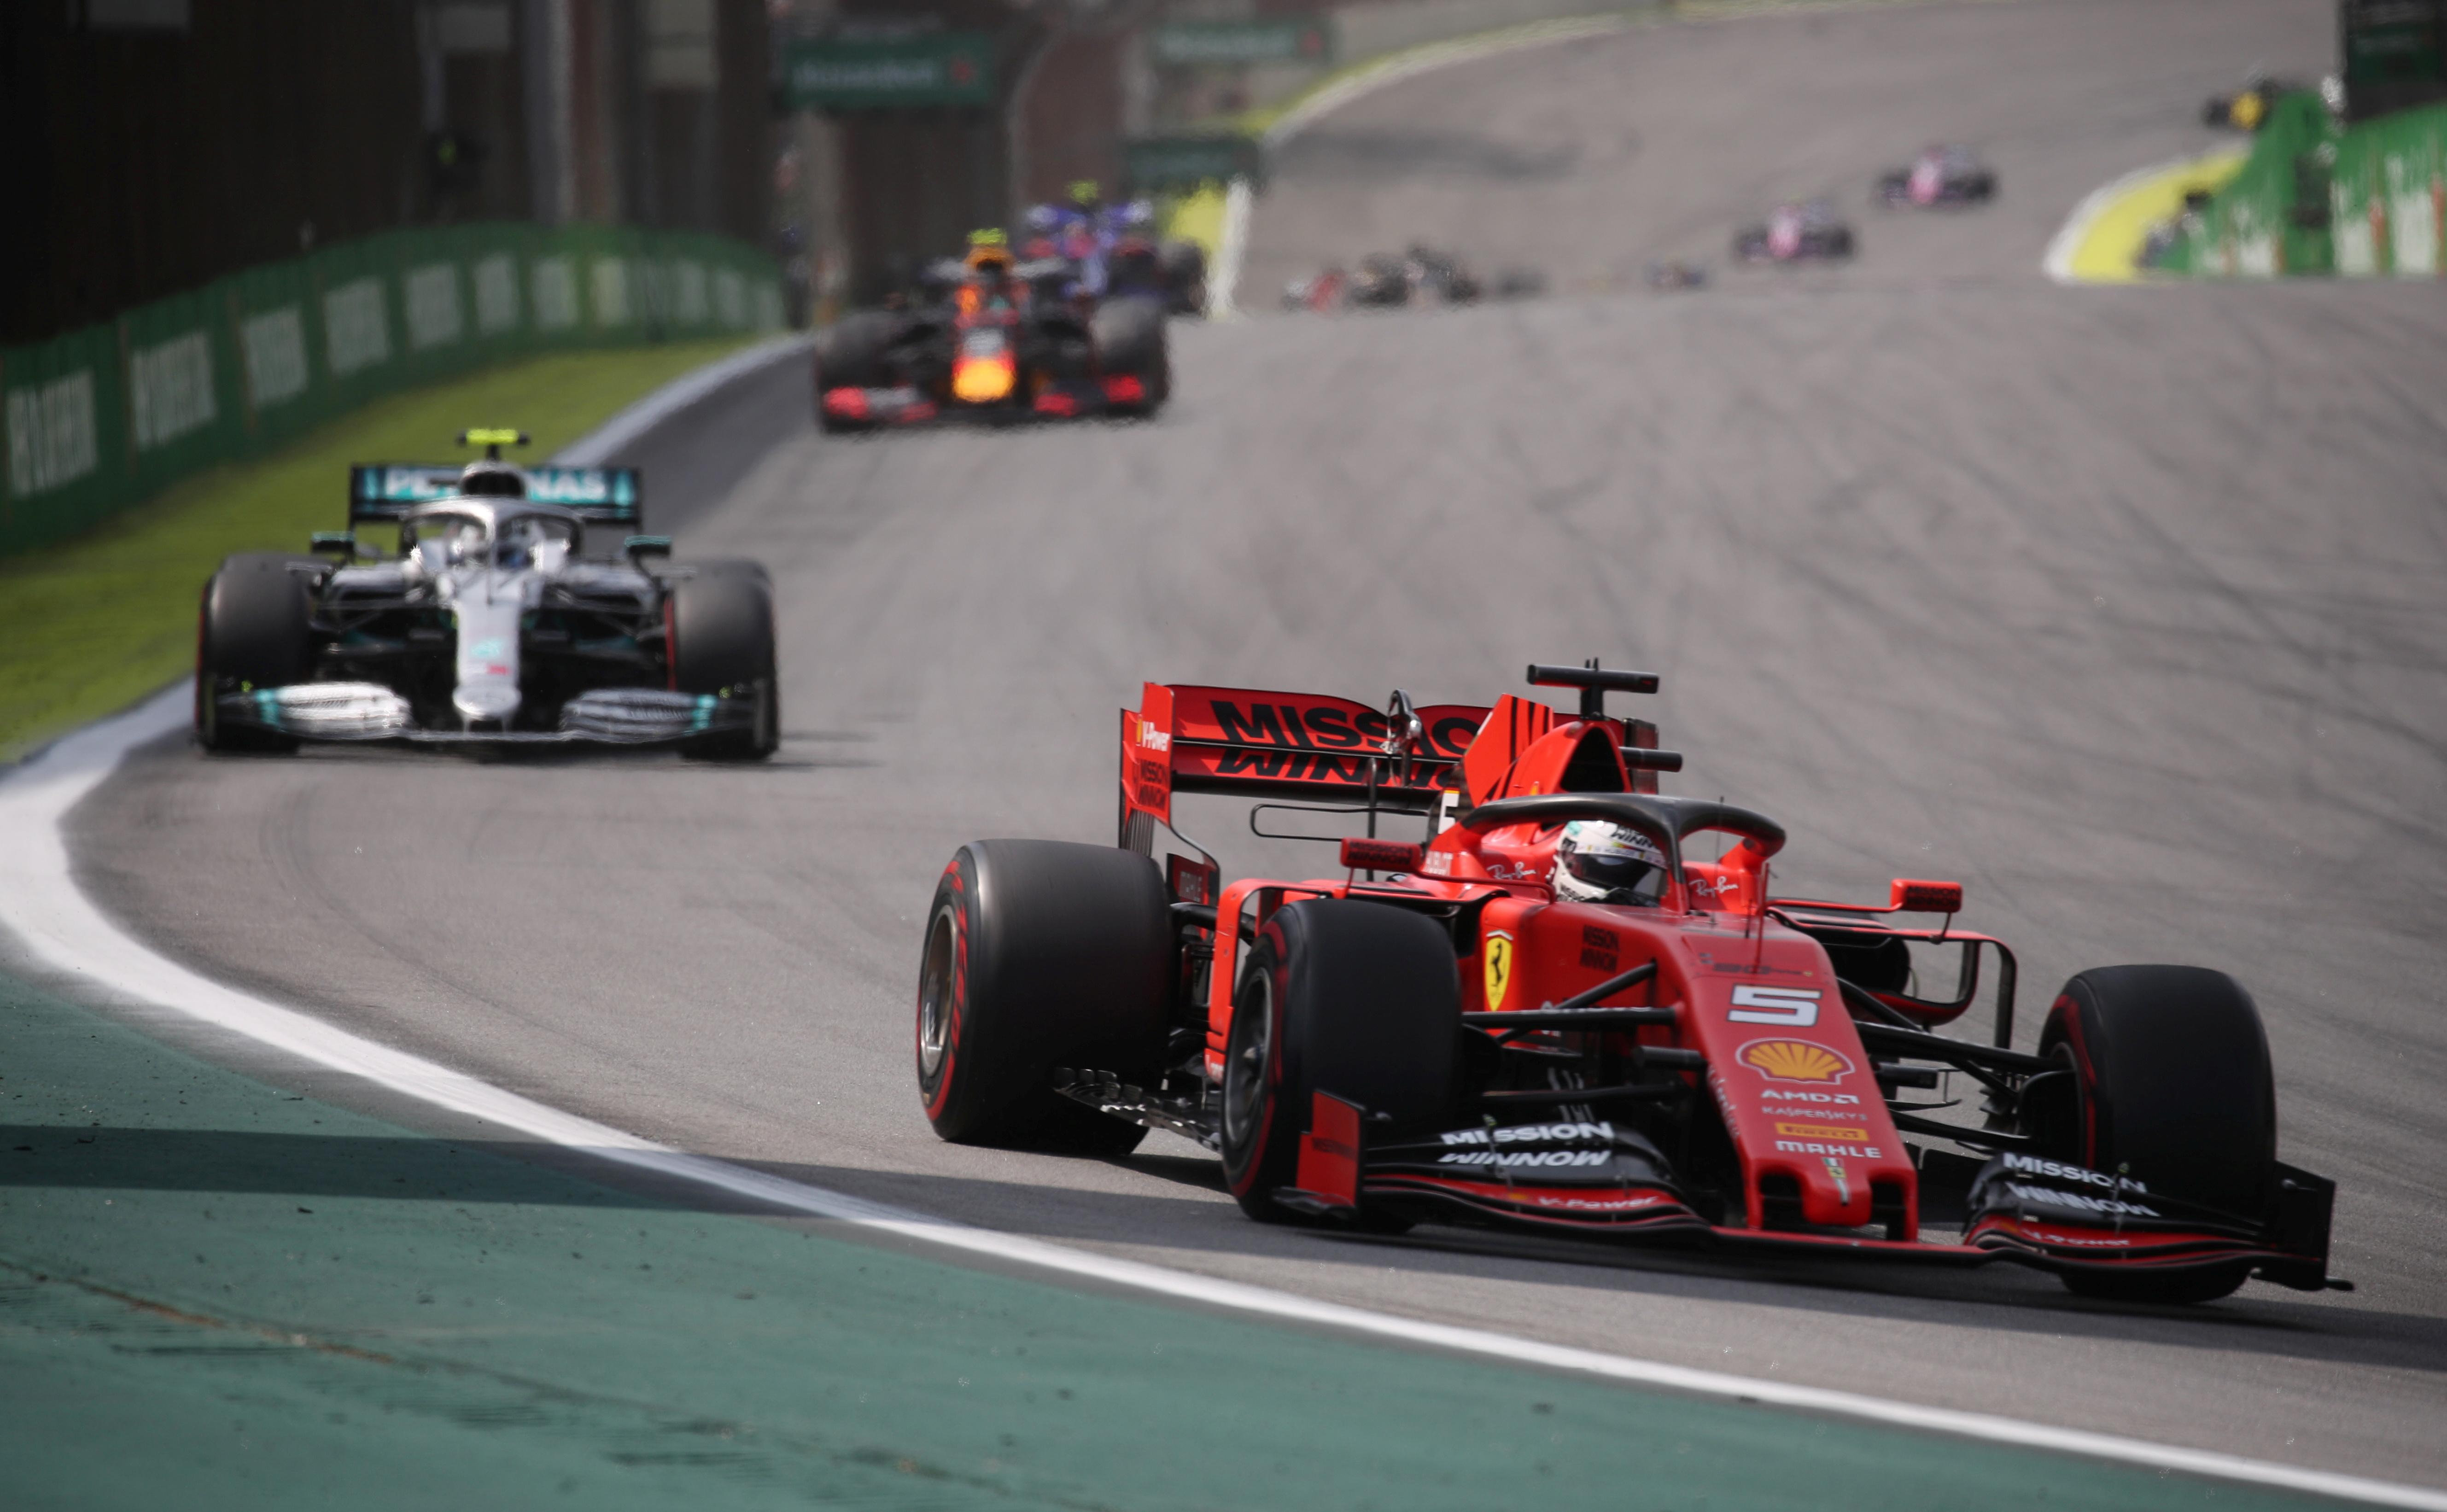 Ferrari say they have made sacrifices to help smaller teams